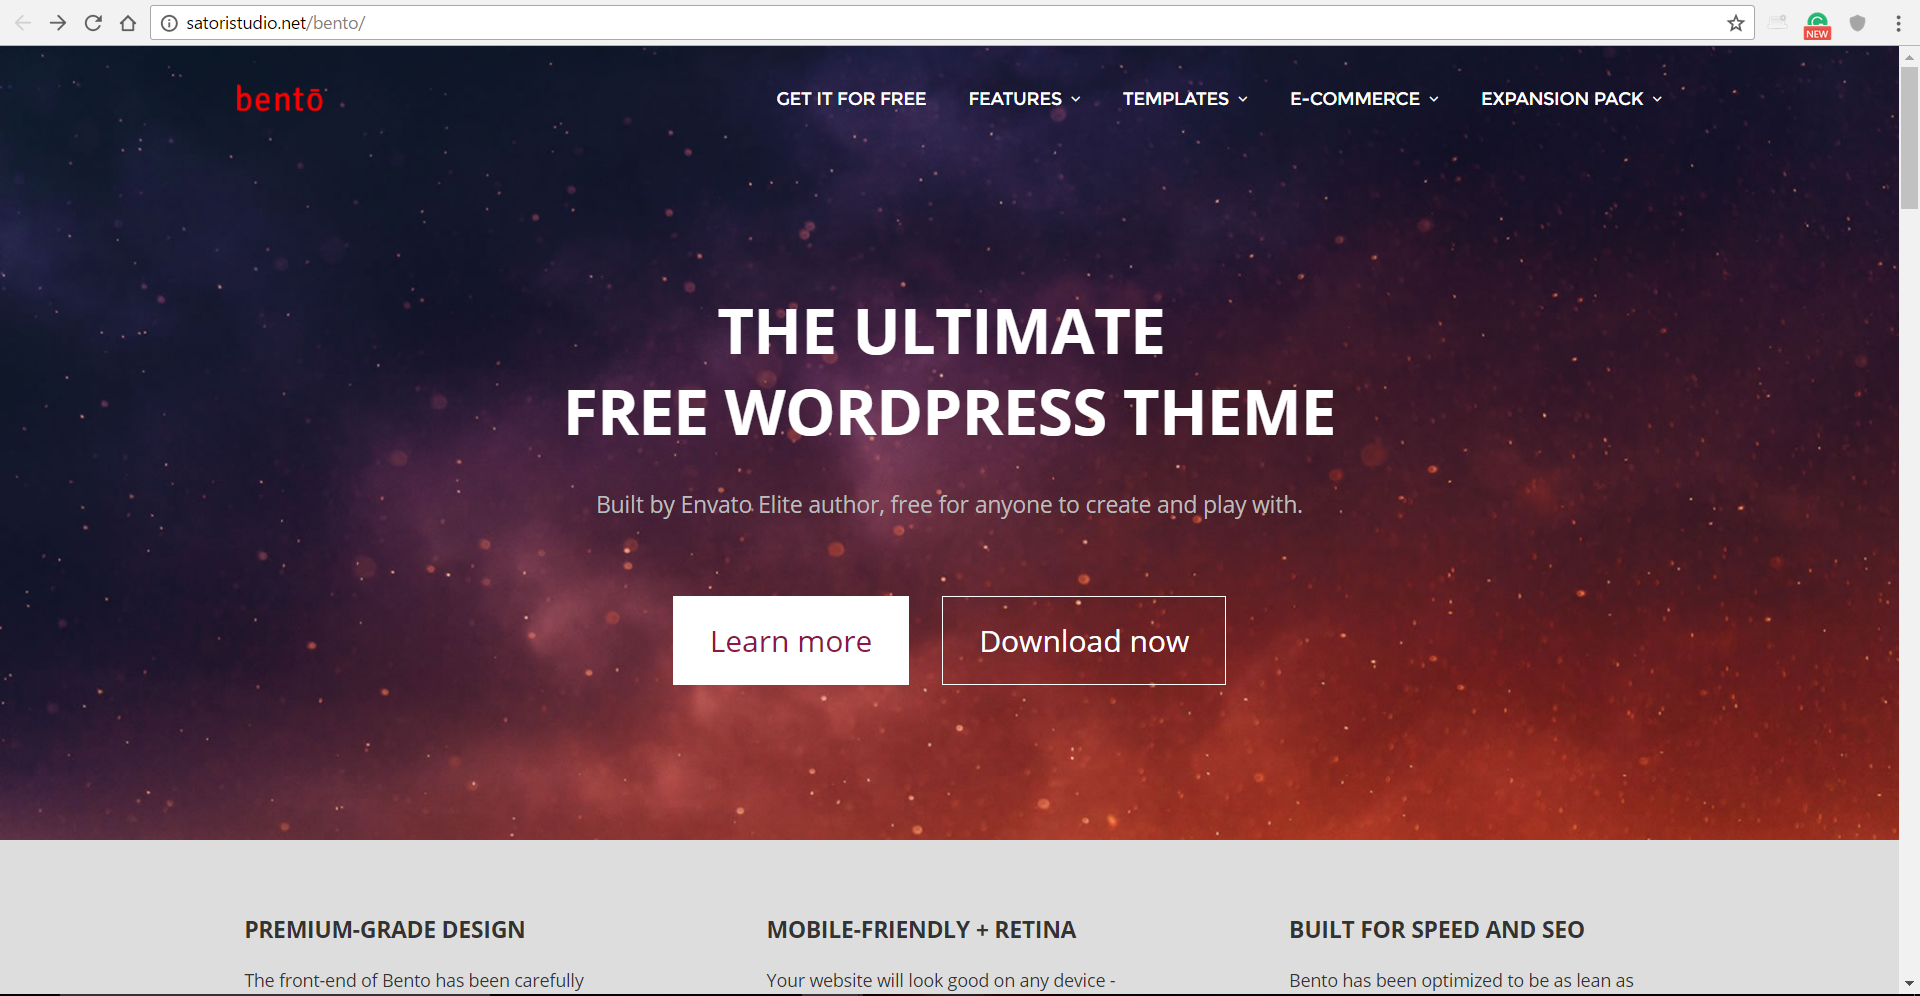 Bento – A Free Full Featured WordPress Theme